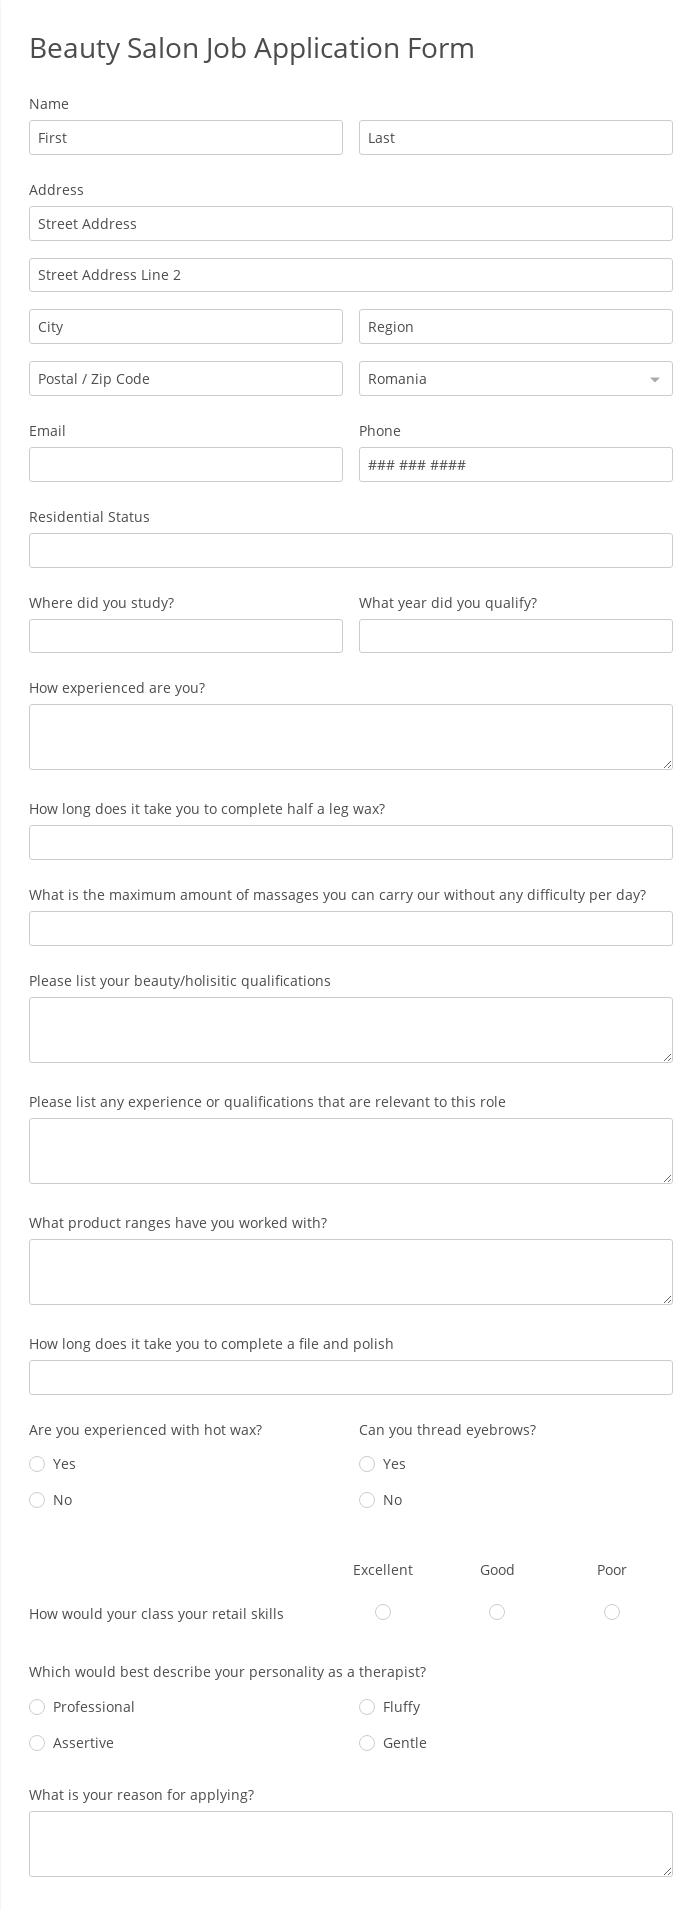 Beauty Salon Job Application Form